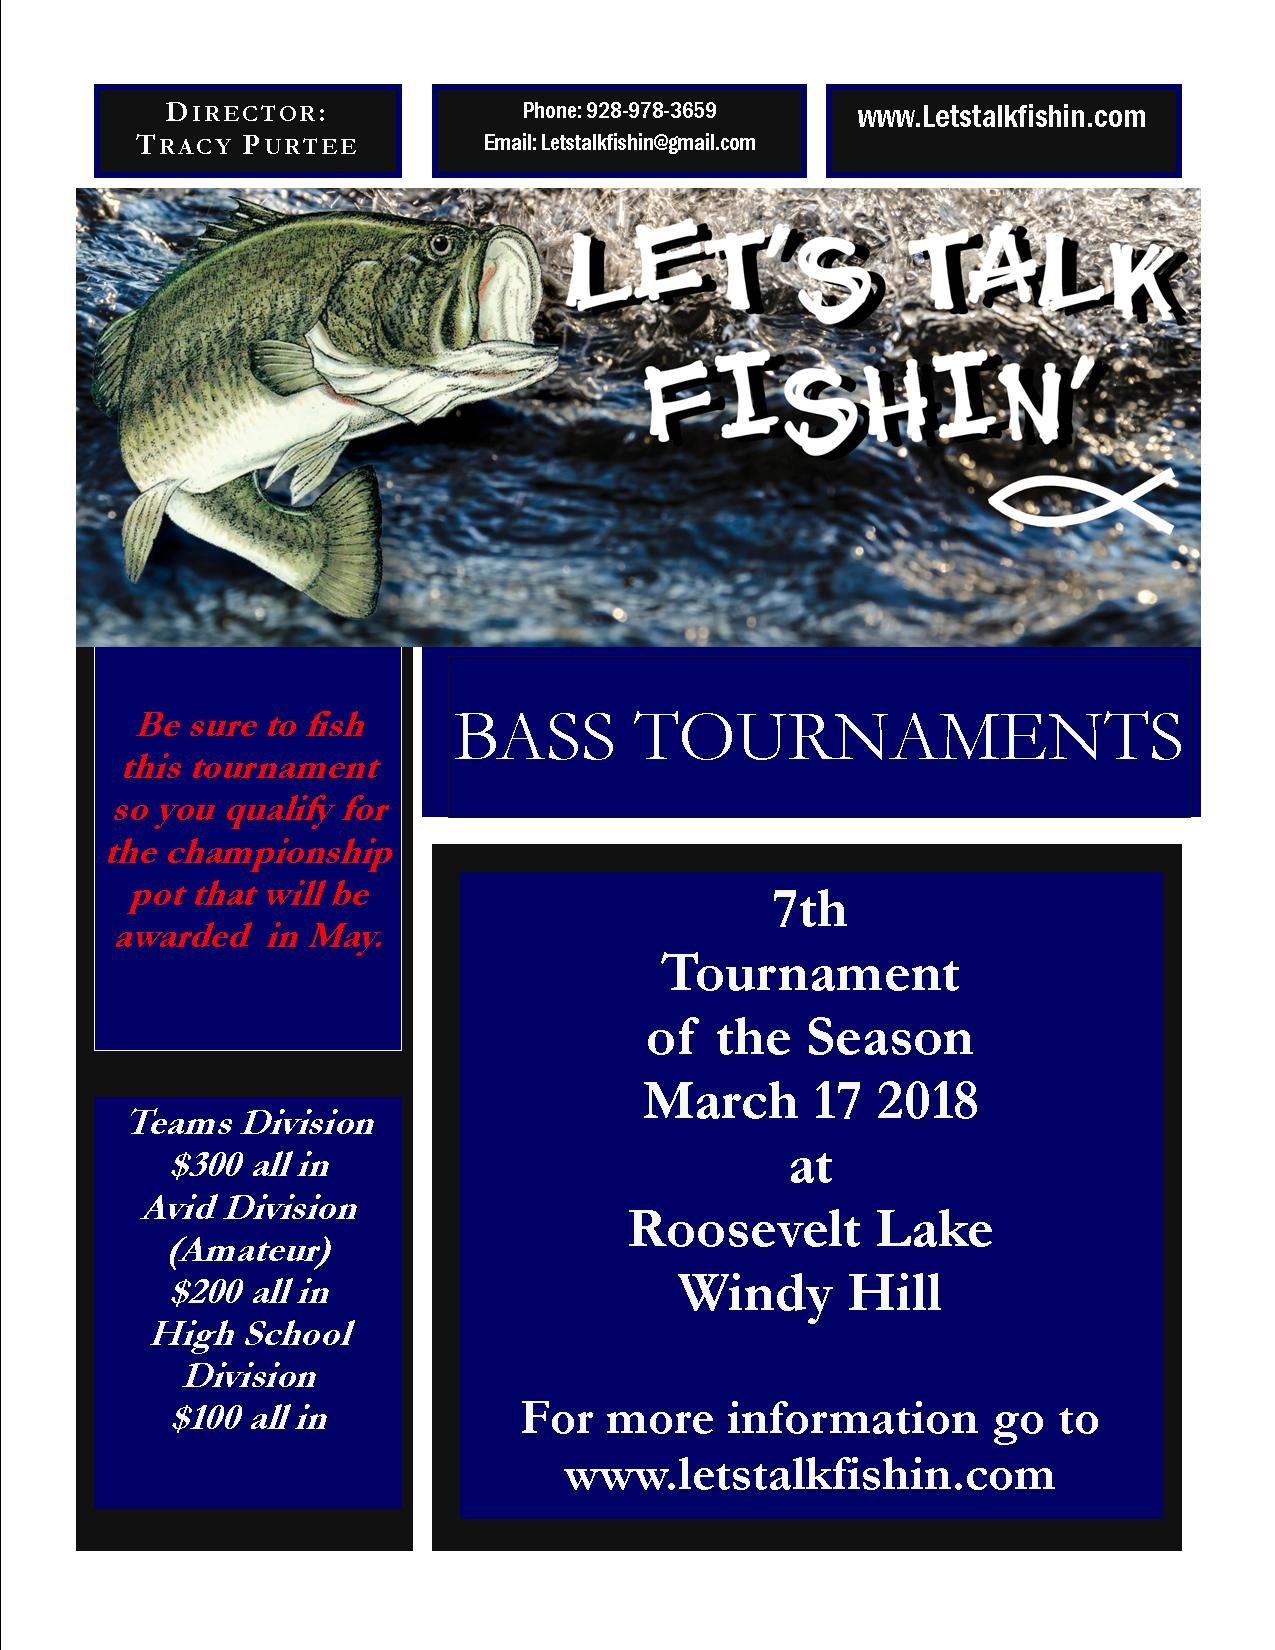 Click image for larger version  Name:7th Tournament.jpg Views:2171 Size:283.6 KB ID:96826